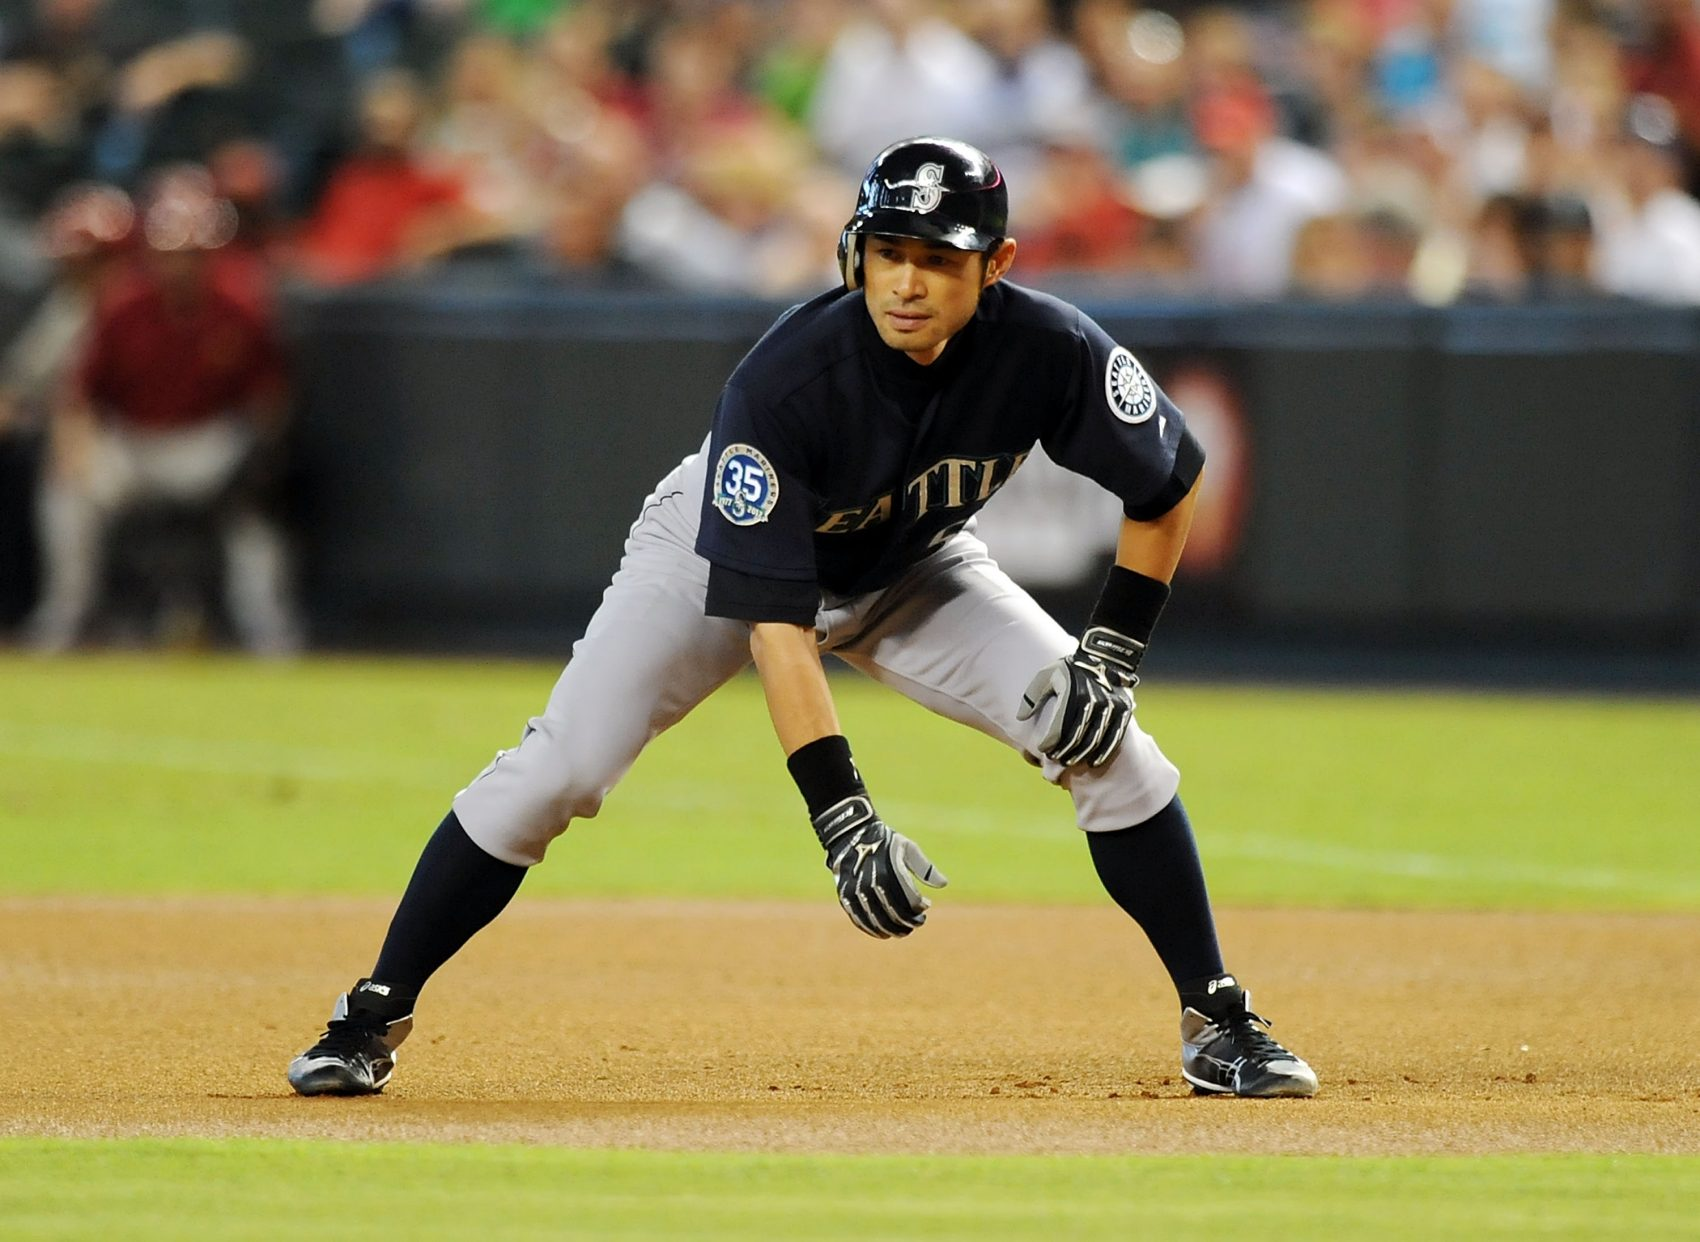 Ichiro Suzuki is back with the Mariners on a 1 year deal. (Norm Hall/Getty Images)